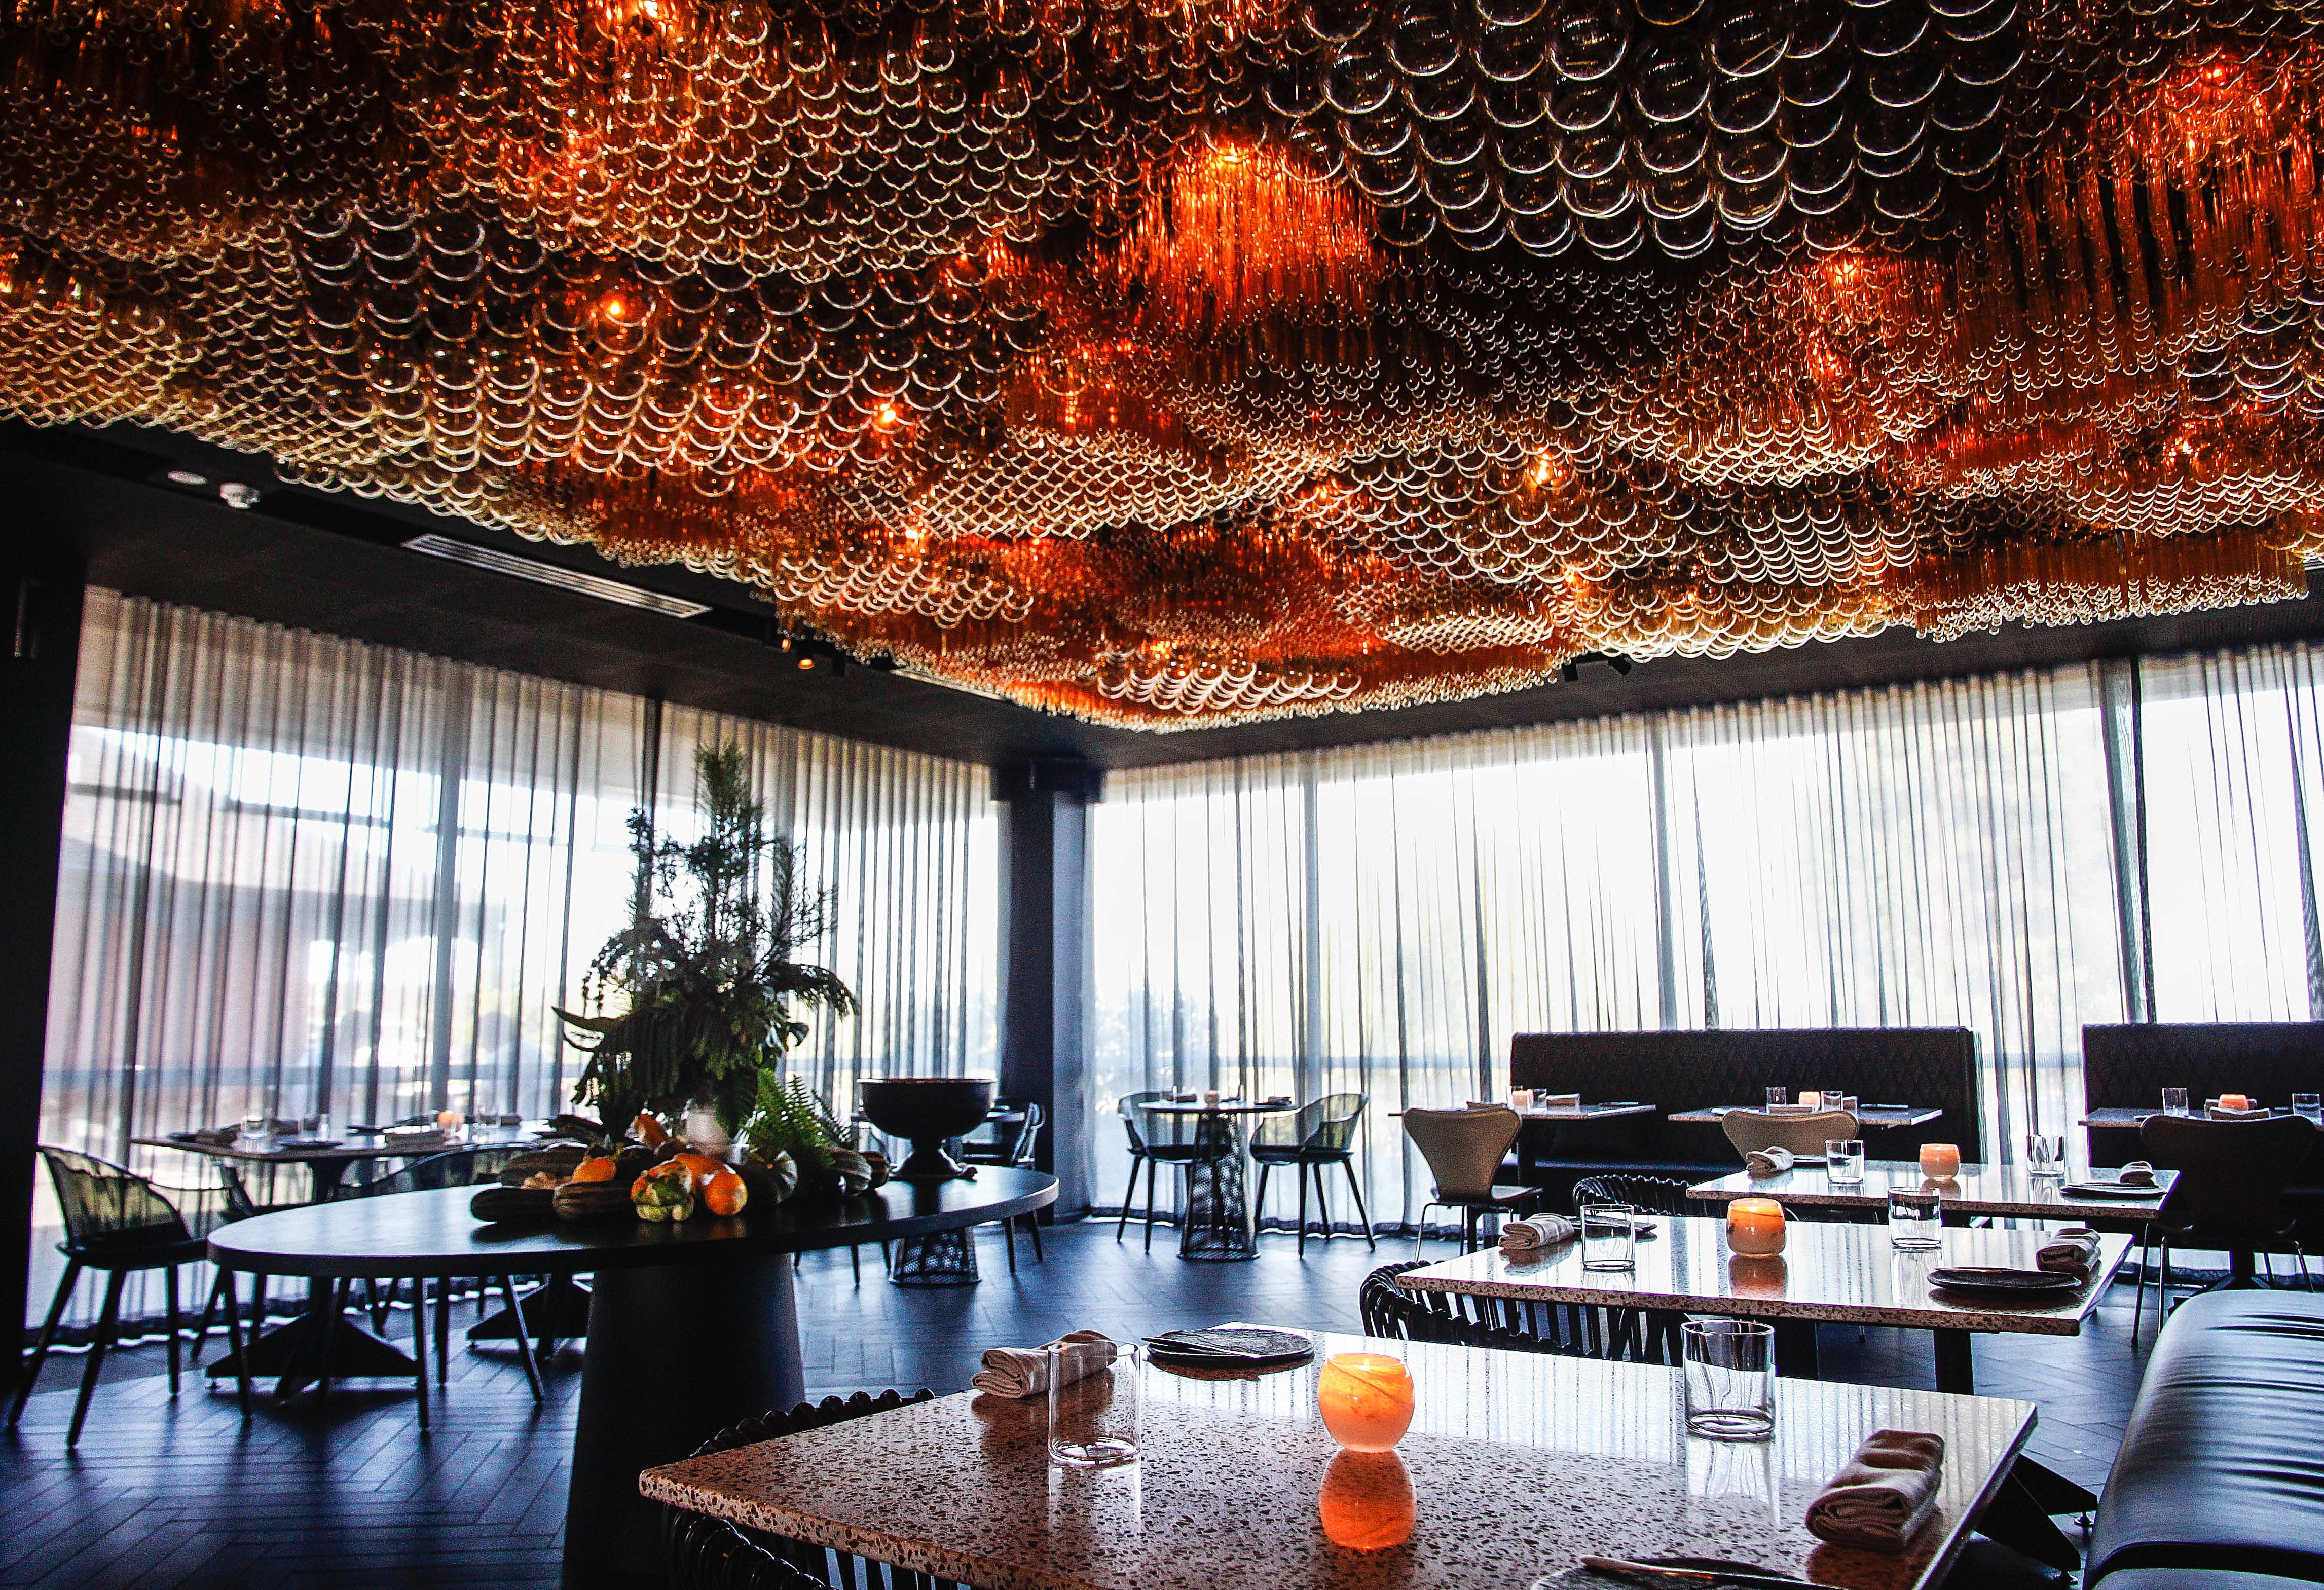 Dramatic Chandeliers in Restaurants Across the World4 dramatic chandeliers Dramatic Chandeliers in Restaurants Across the World Dramatic Chandeliers in Restaurants Across the World4